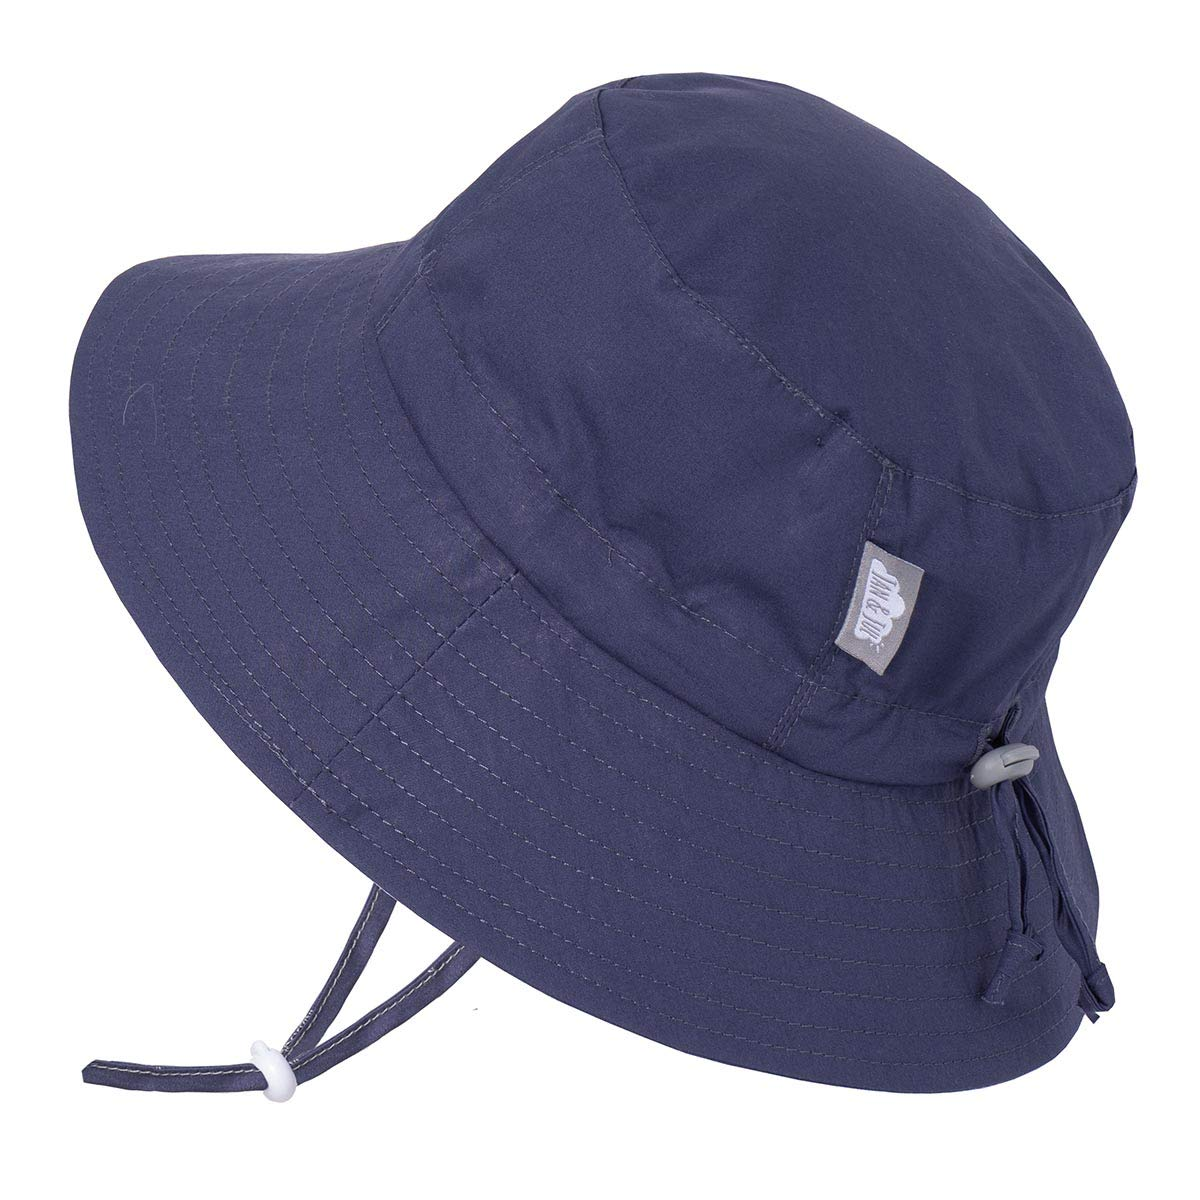 Adjustable for Growth Stay-on Jan /& Jul Baby Toddler Kids Breathable Cotton Bucket Sun-Hat 50 UPF